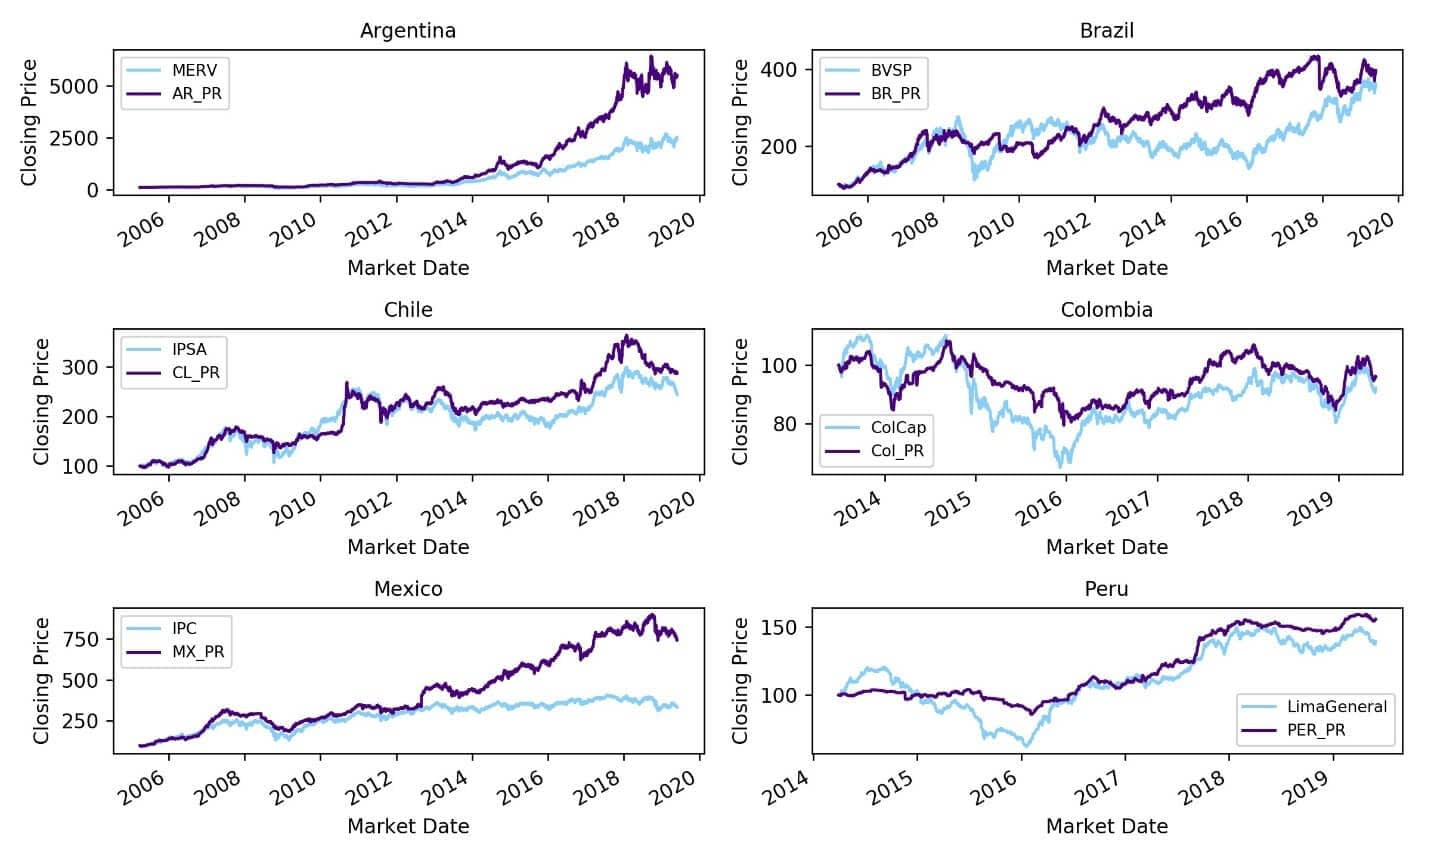 Low-Volatility-Price-Return-Indices-and-Their-Benchmarks-in-LatAm